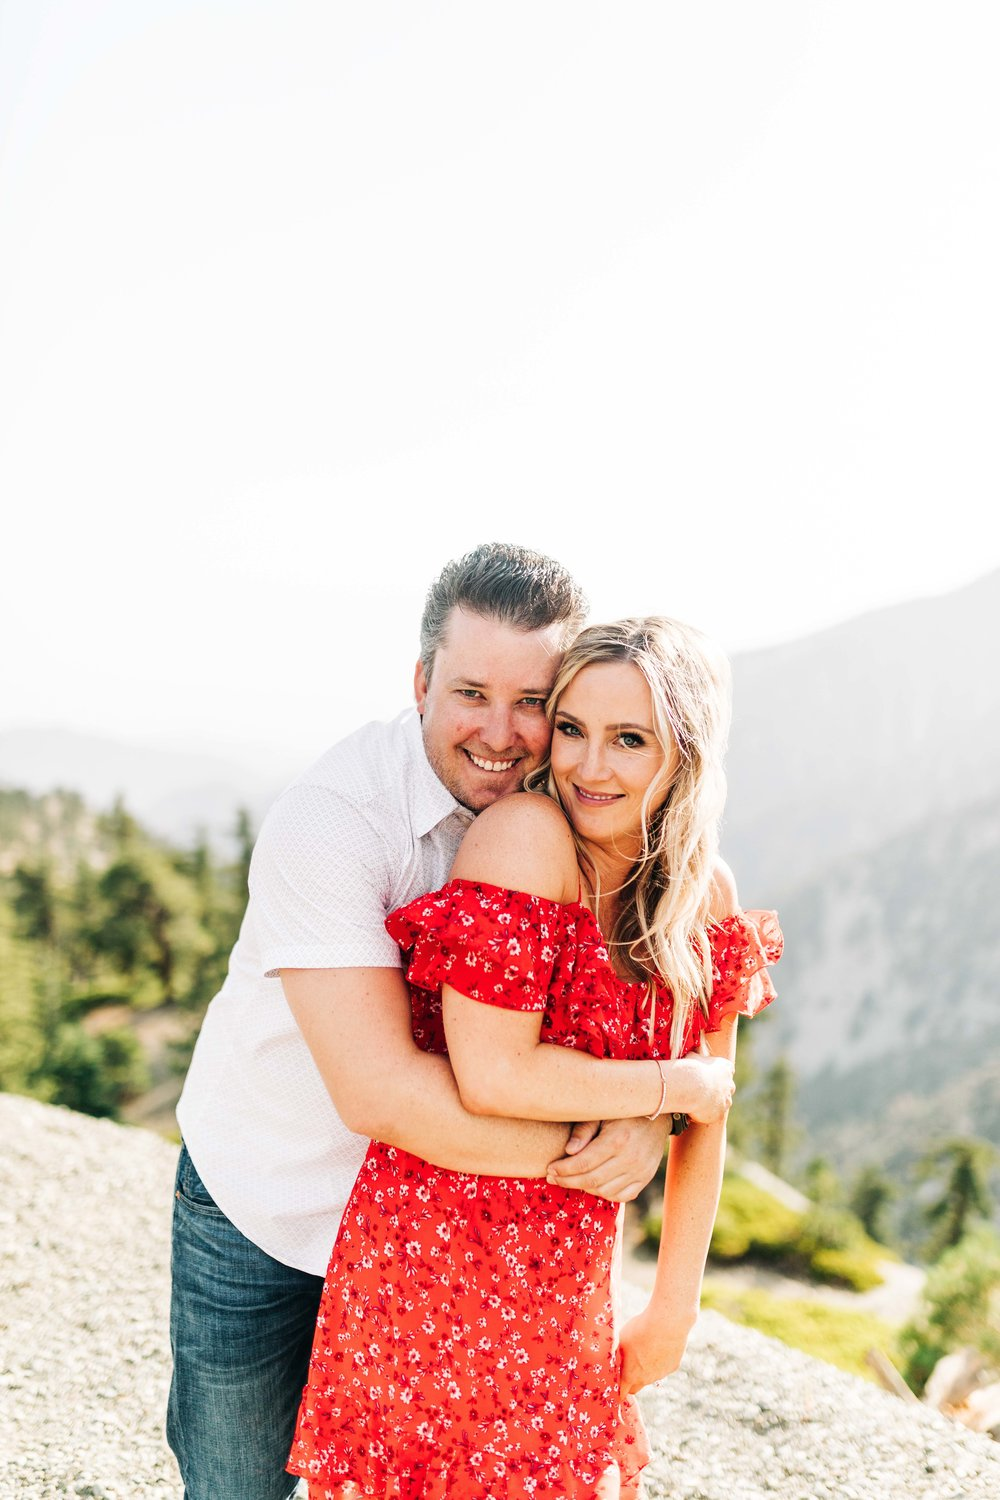 Rachael&Keith-Mount-Baldy-Engagement-Photos-Clarisse-Rae-Southern-California-Wedding-Photographer_12.jpg